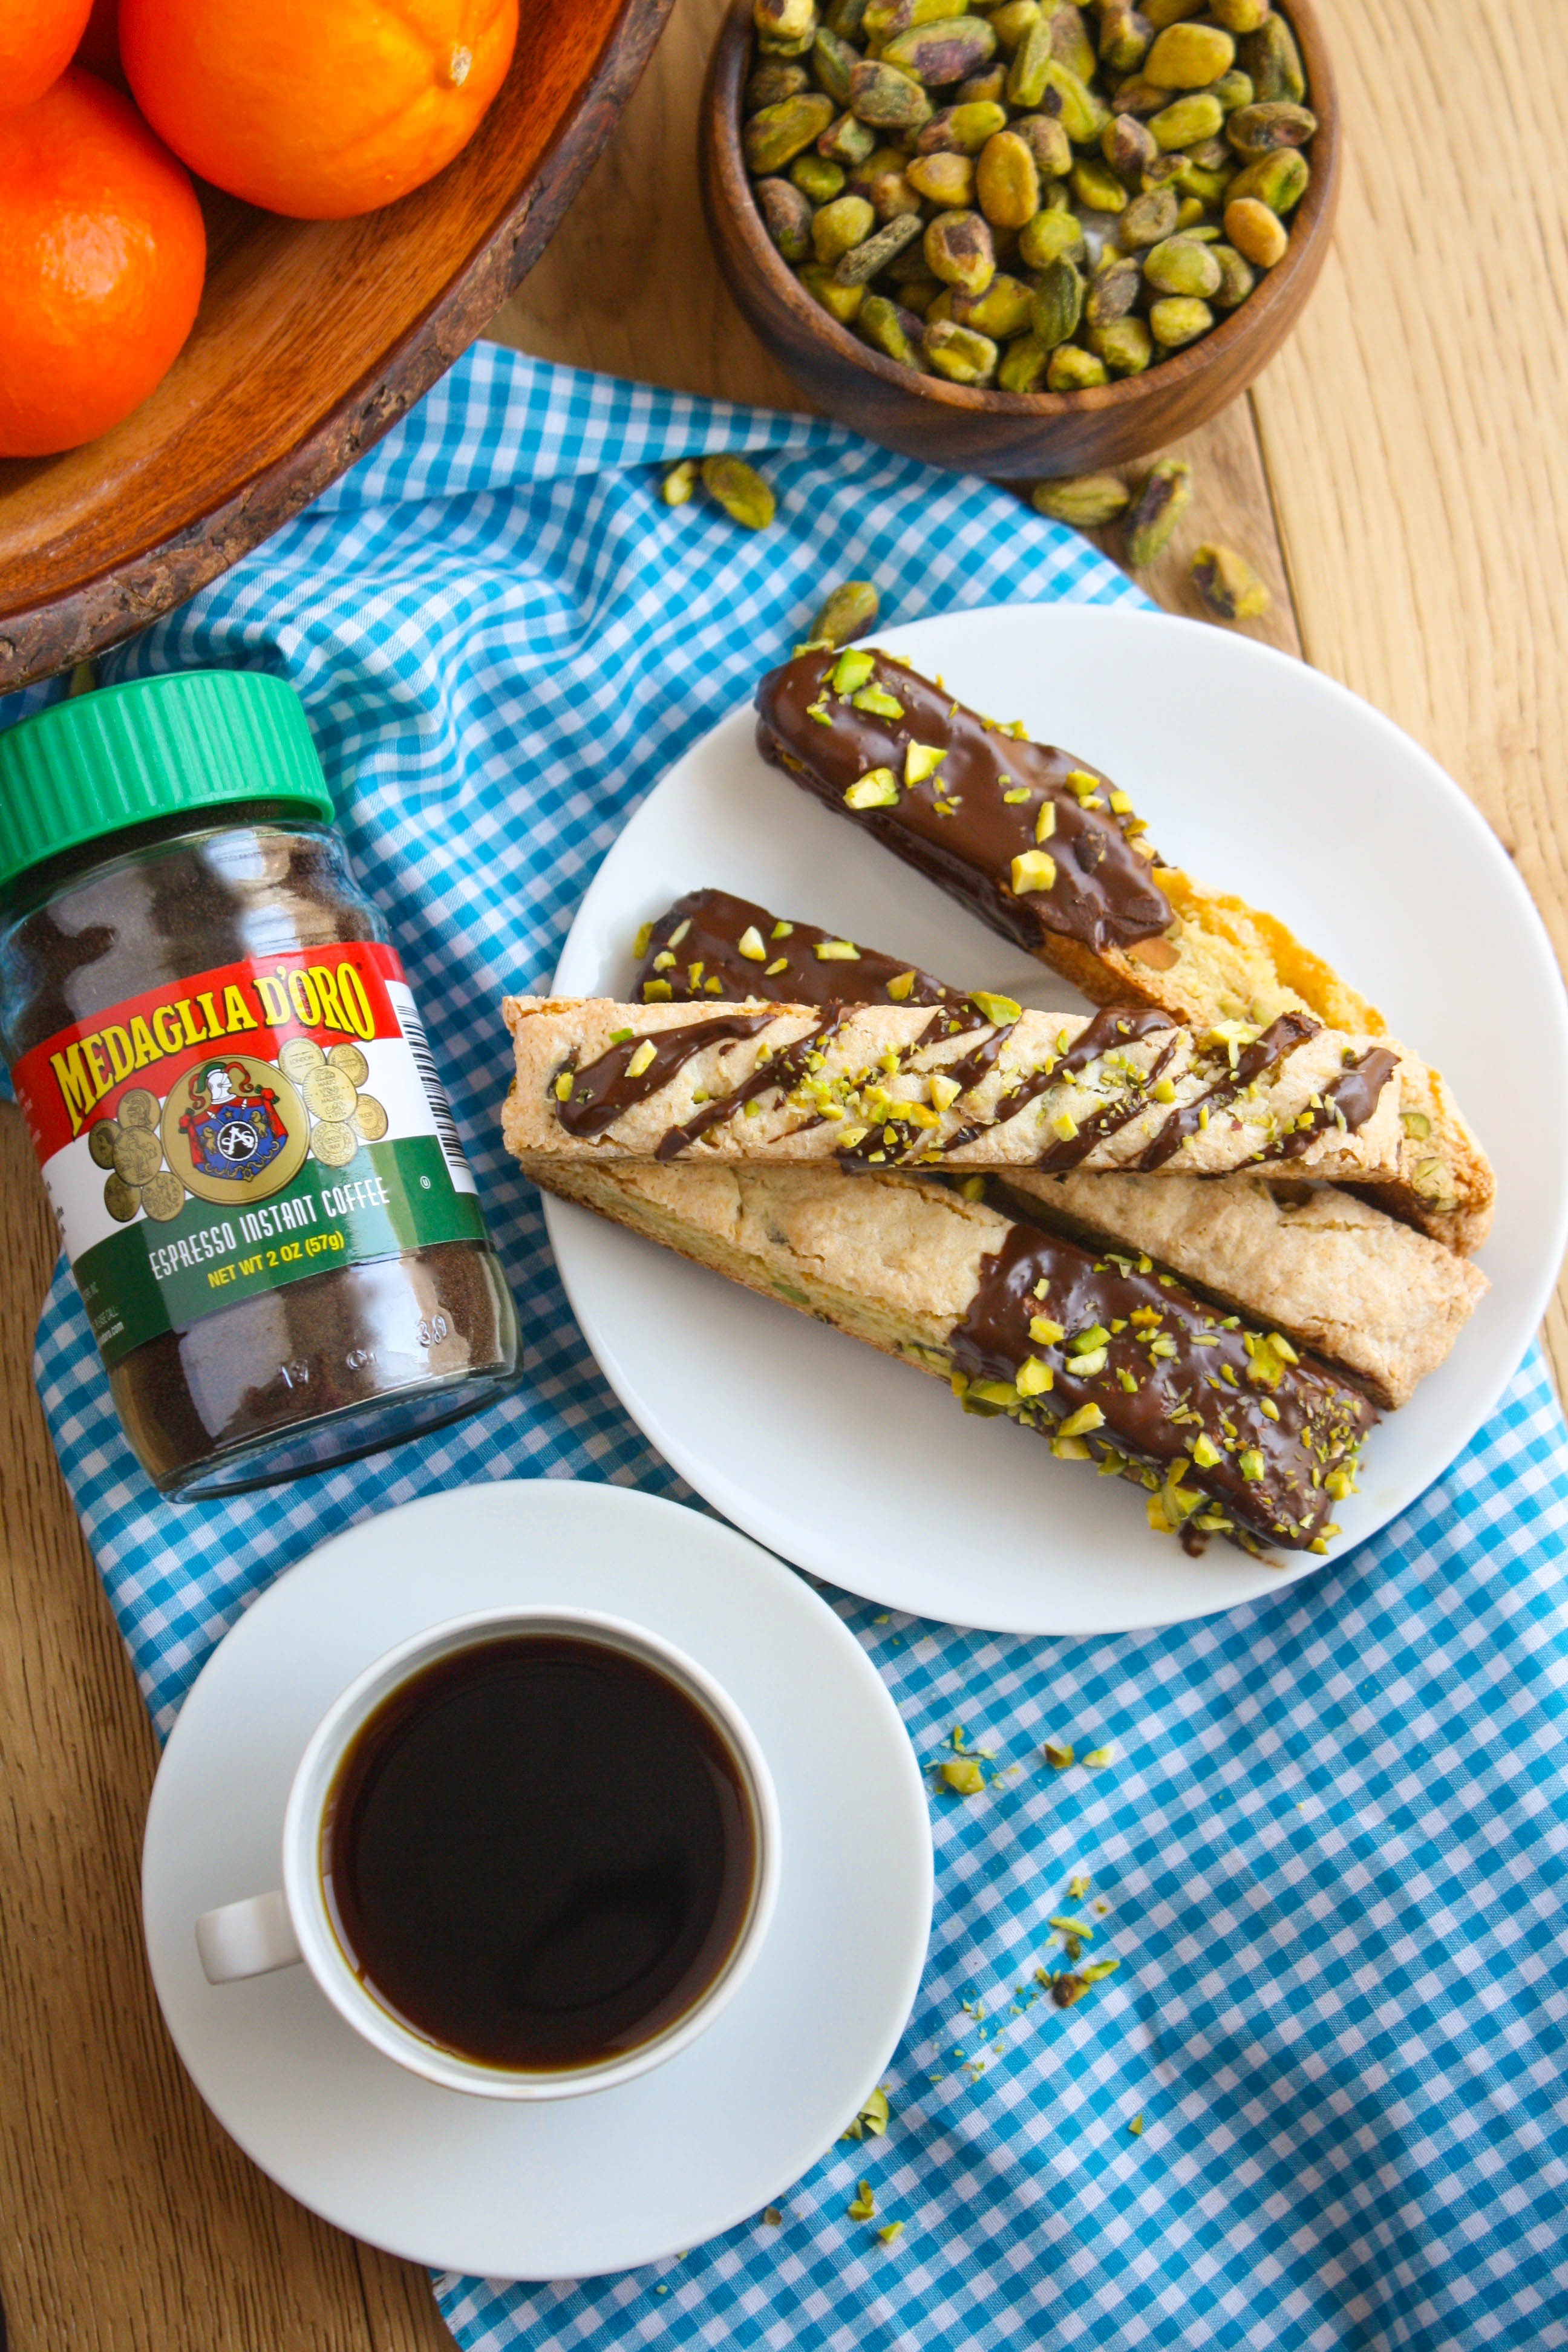 Chocolate-Espresso Dipped Orange and Pistachio Biscotti cookies are an Italian treat you'll love. These dessert cookies are fabulous anytime!